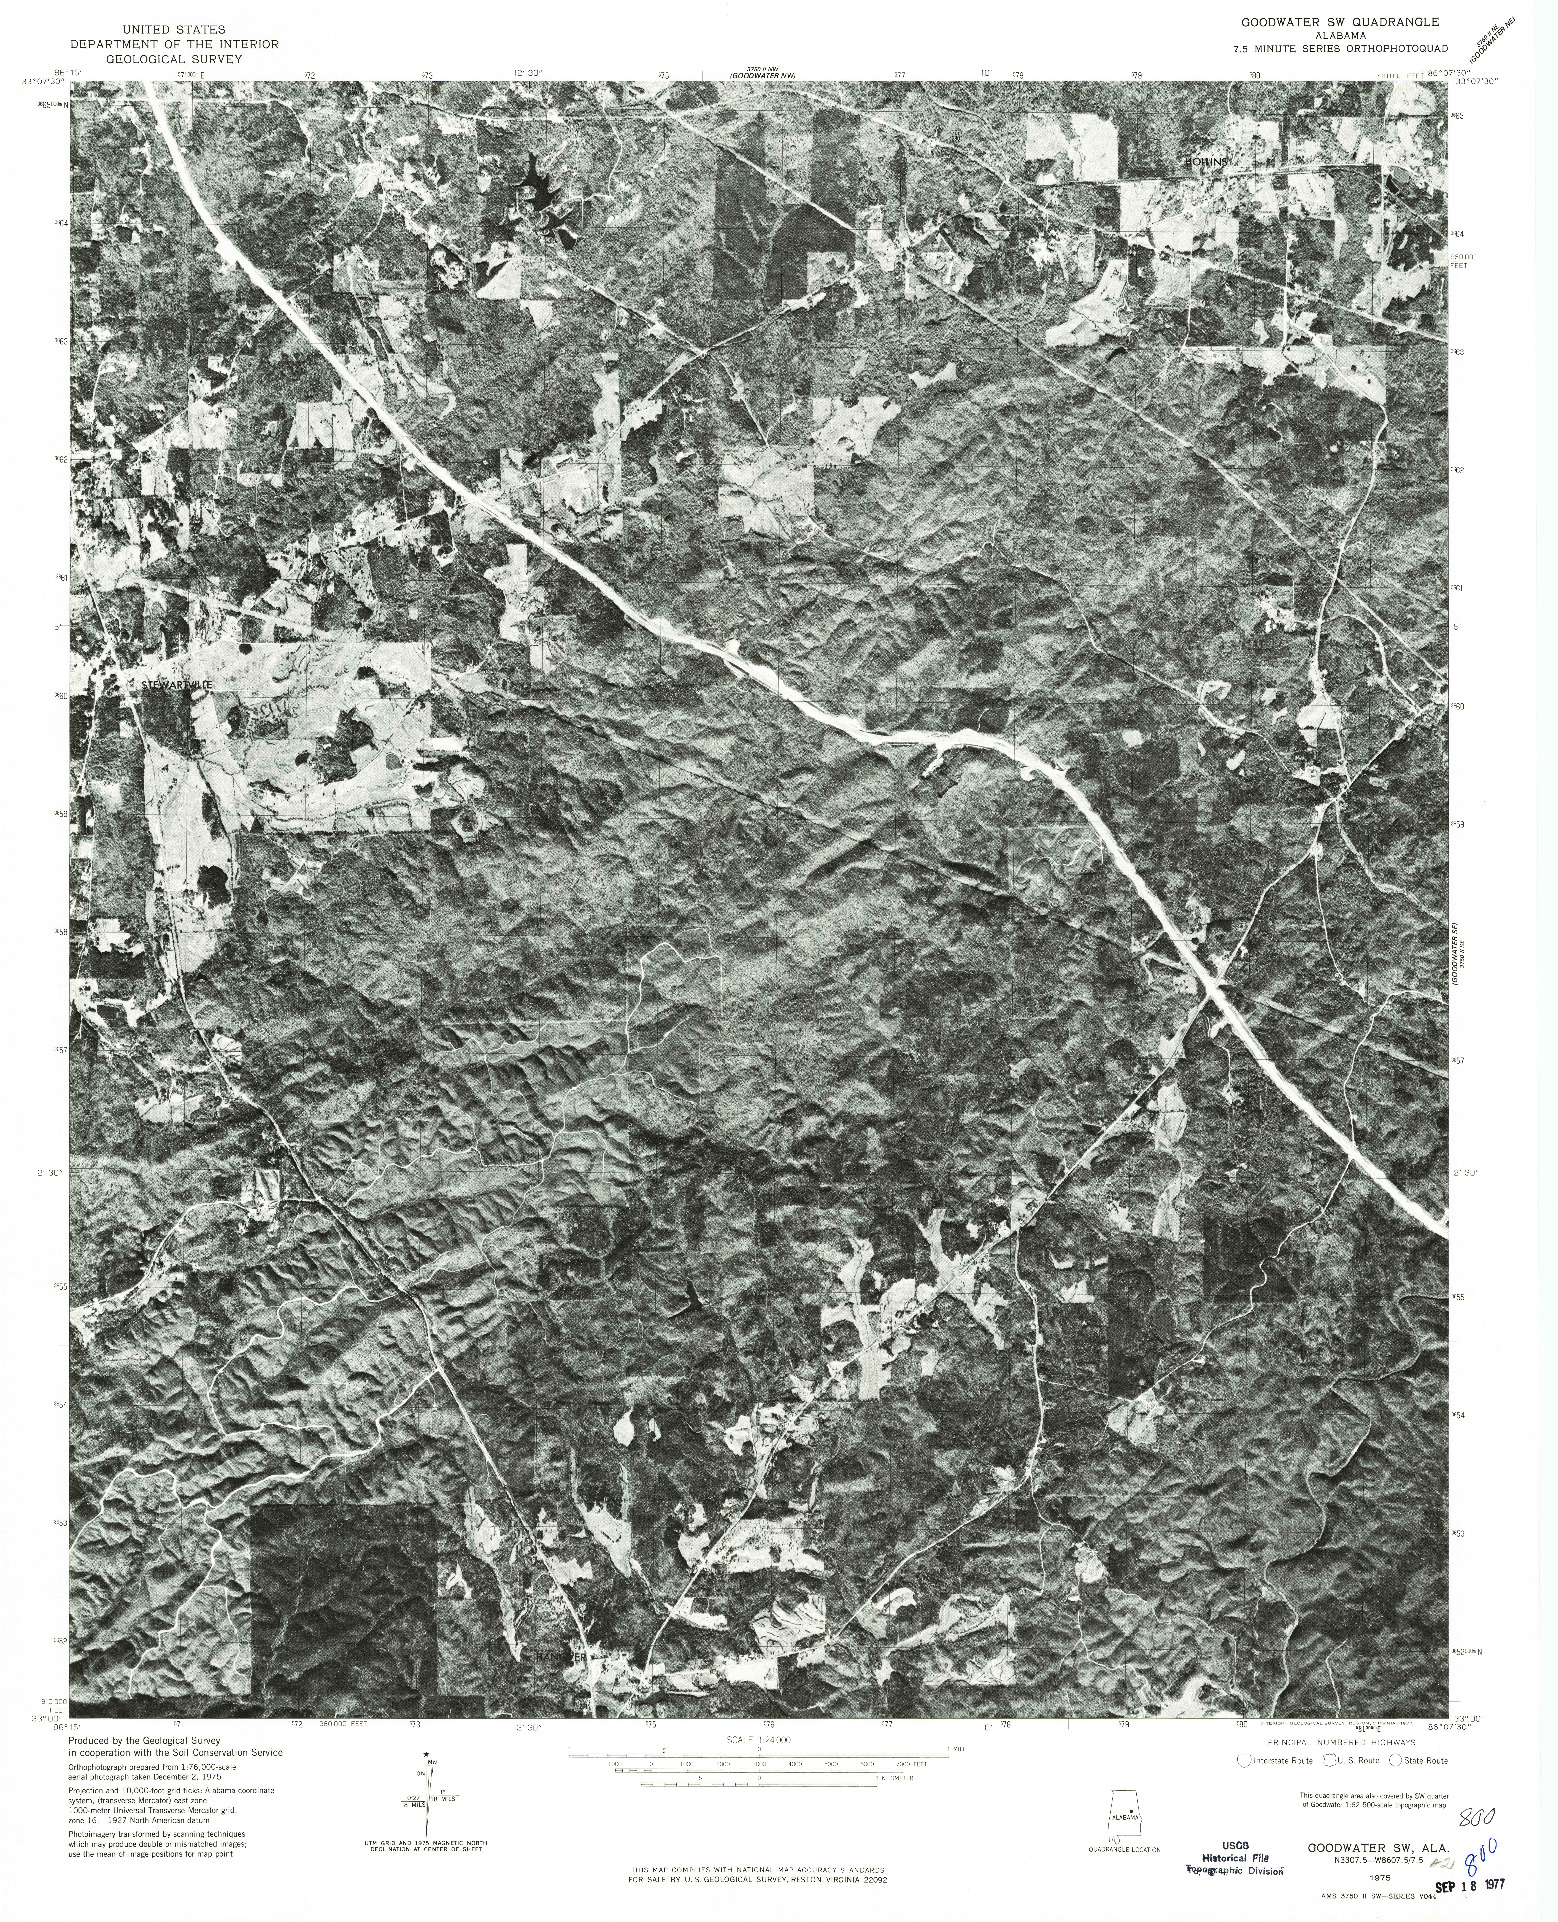 USGS 1:24000-SCALE QUADRANGLE FOR GOODWATER SE, AL 1975